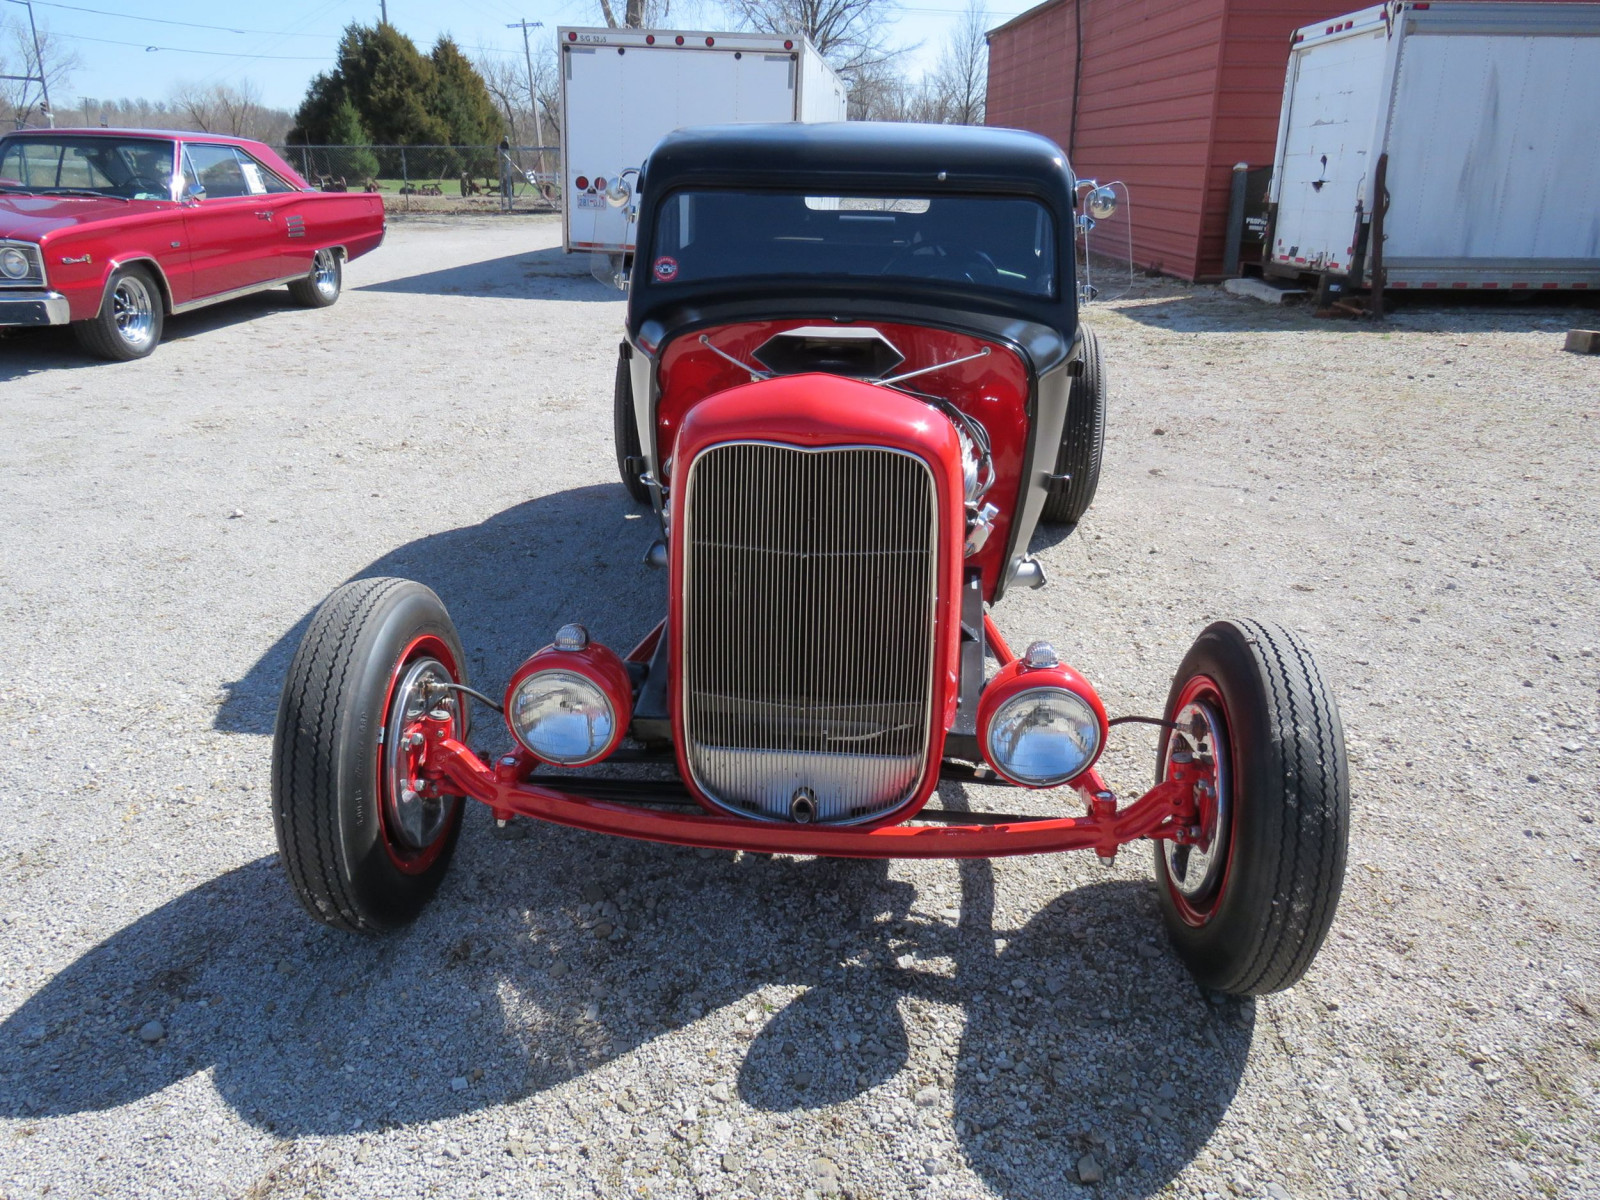 1929 Ford 23dr Sedan Custom Hot Rod - Image 2